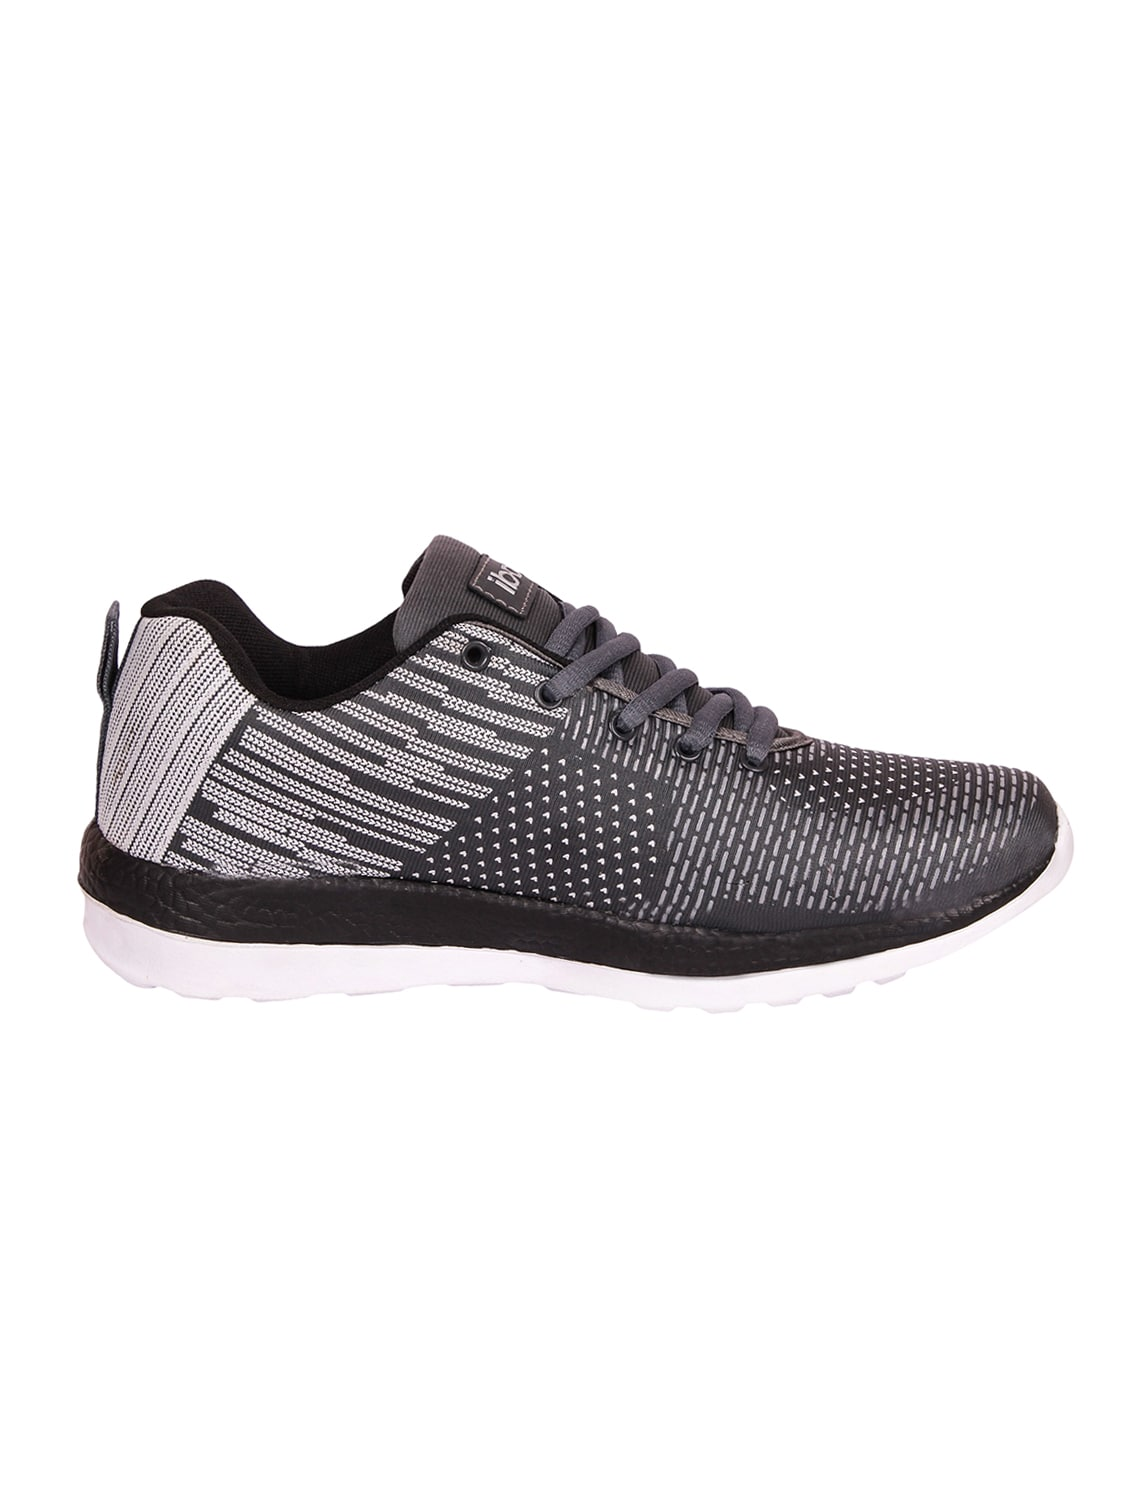 451f4def2f Buy Grey Fabric Sport Shoe for Men from Aadi Shoes for ₹499 at 50% off |  2019 Limeroad.com